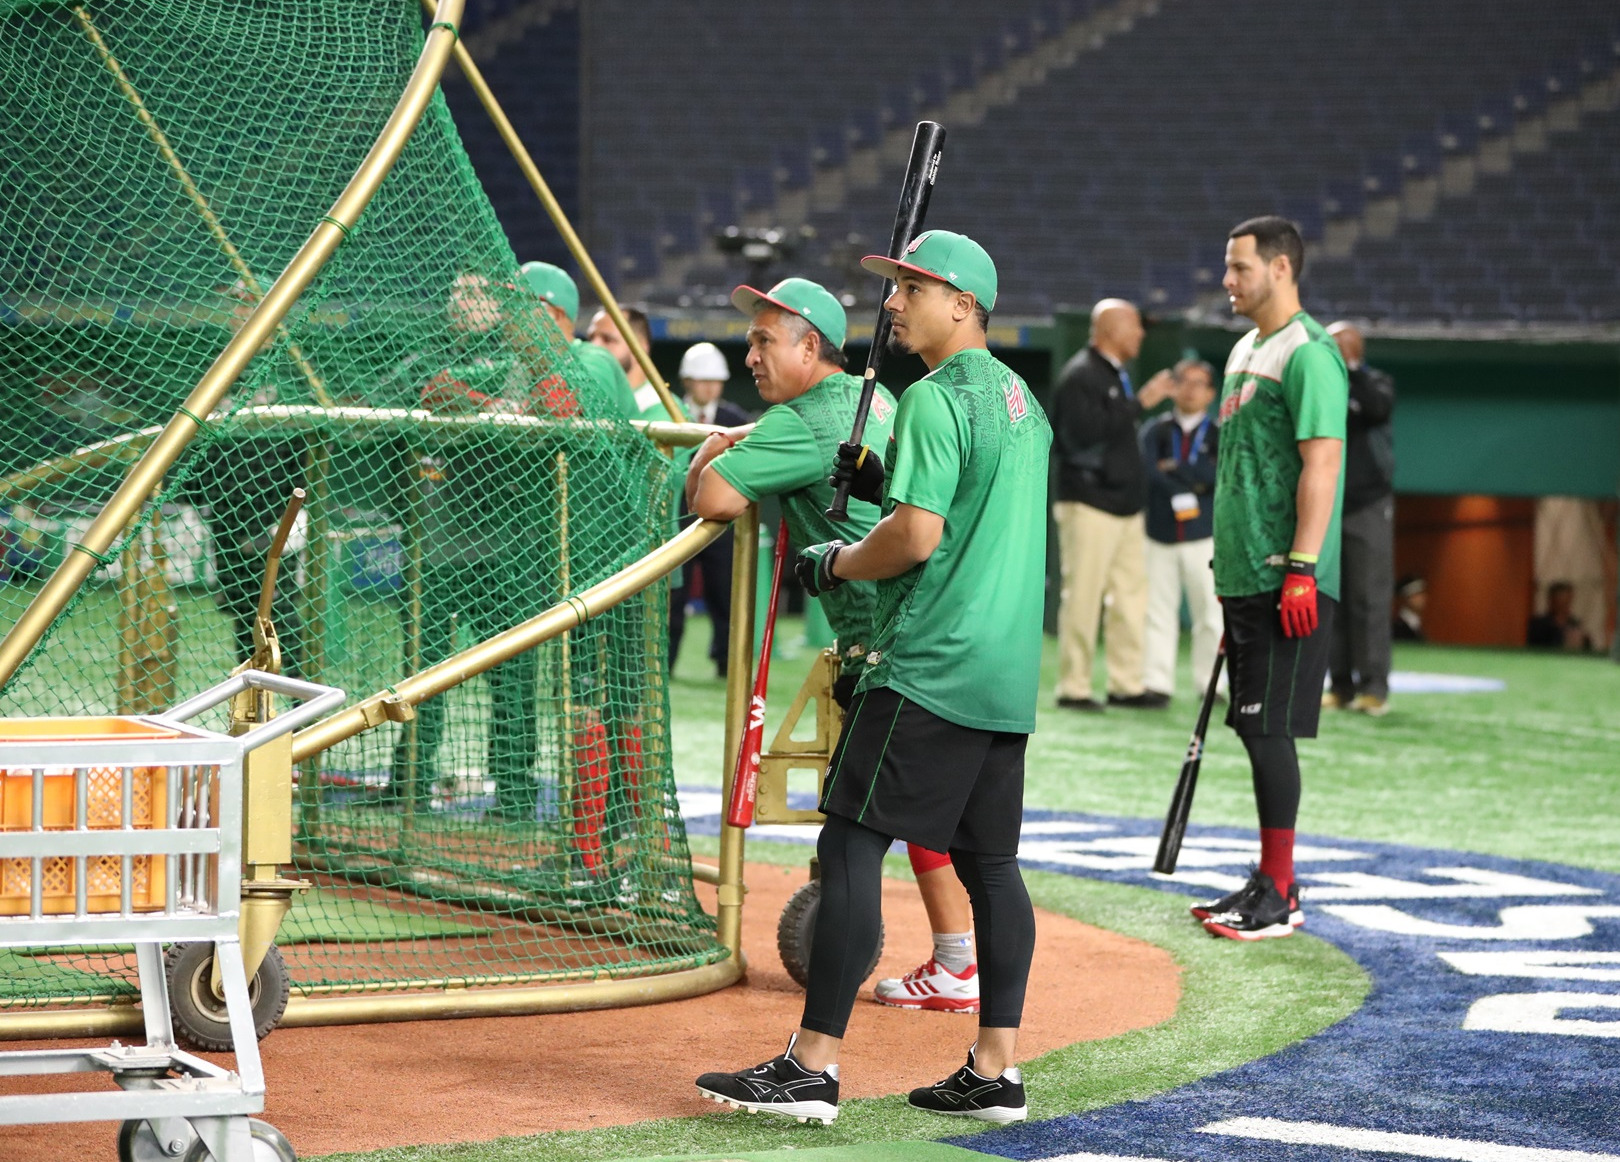 Mexico takes batting practice before the game